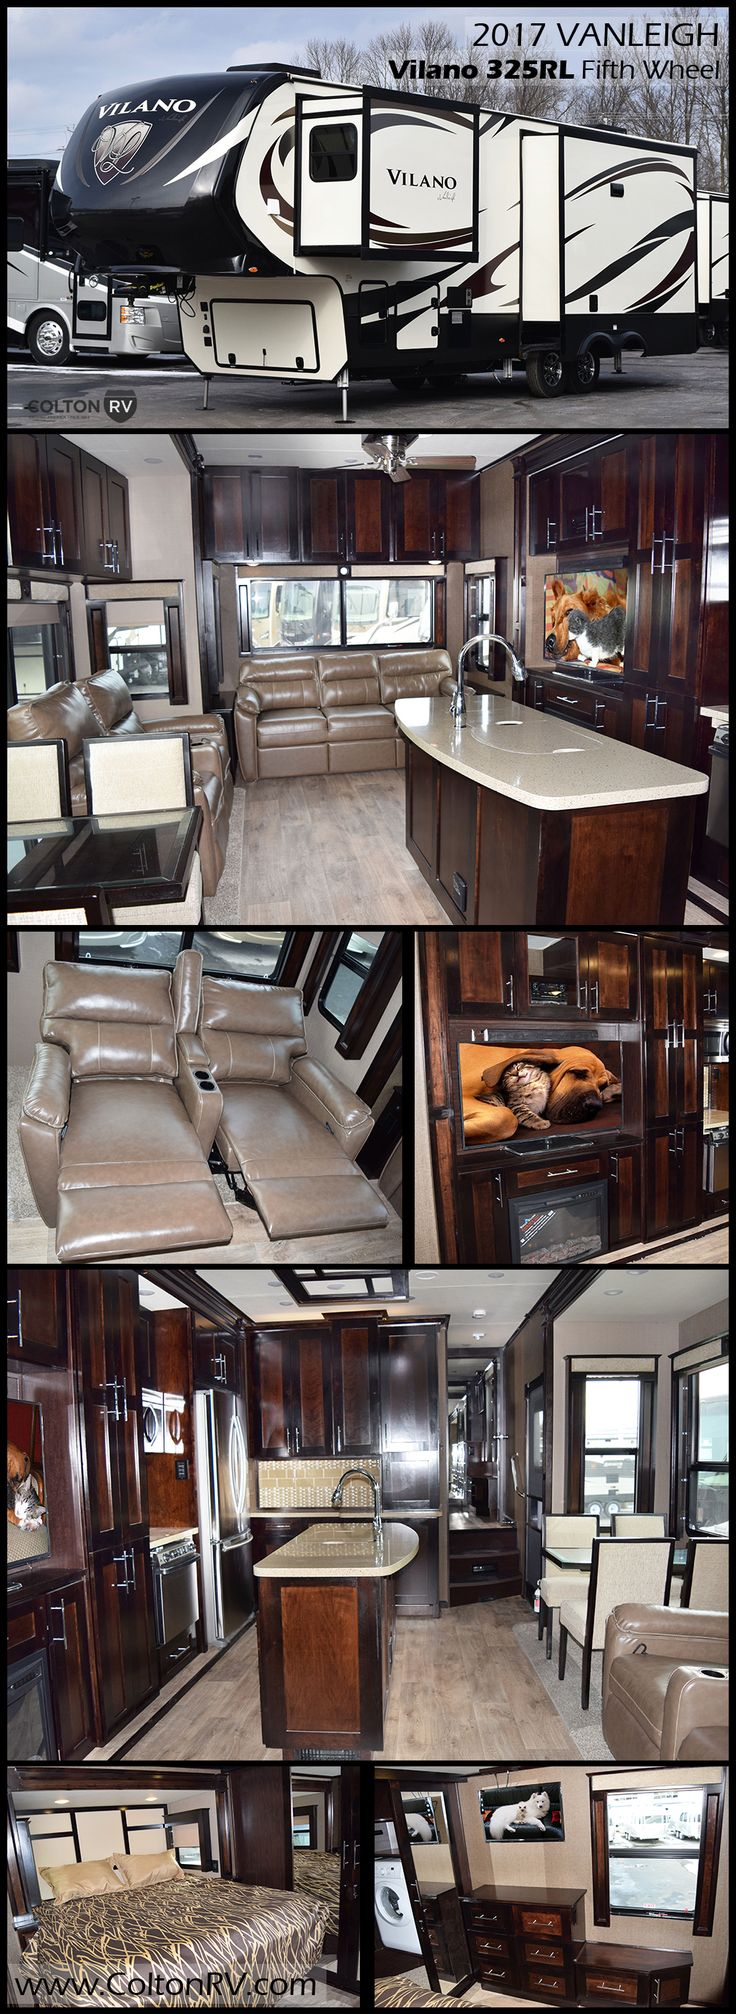 48 best fifth wheel images on pinterest fifth wheel camping find this pin and more on fifth wheel by coltonrv